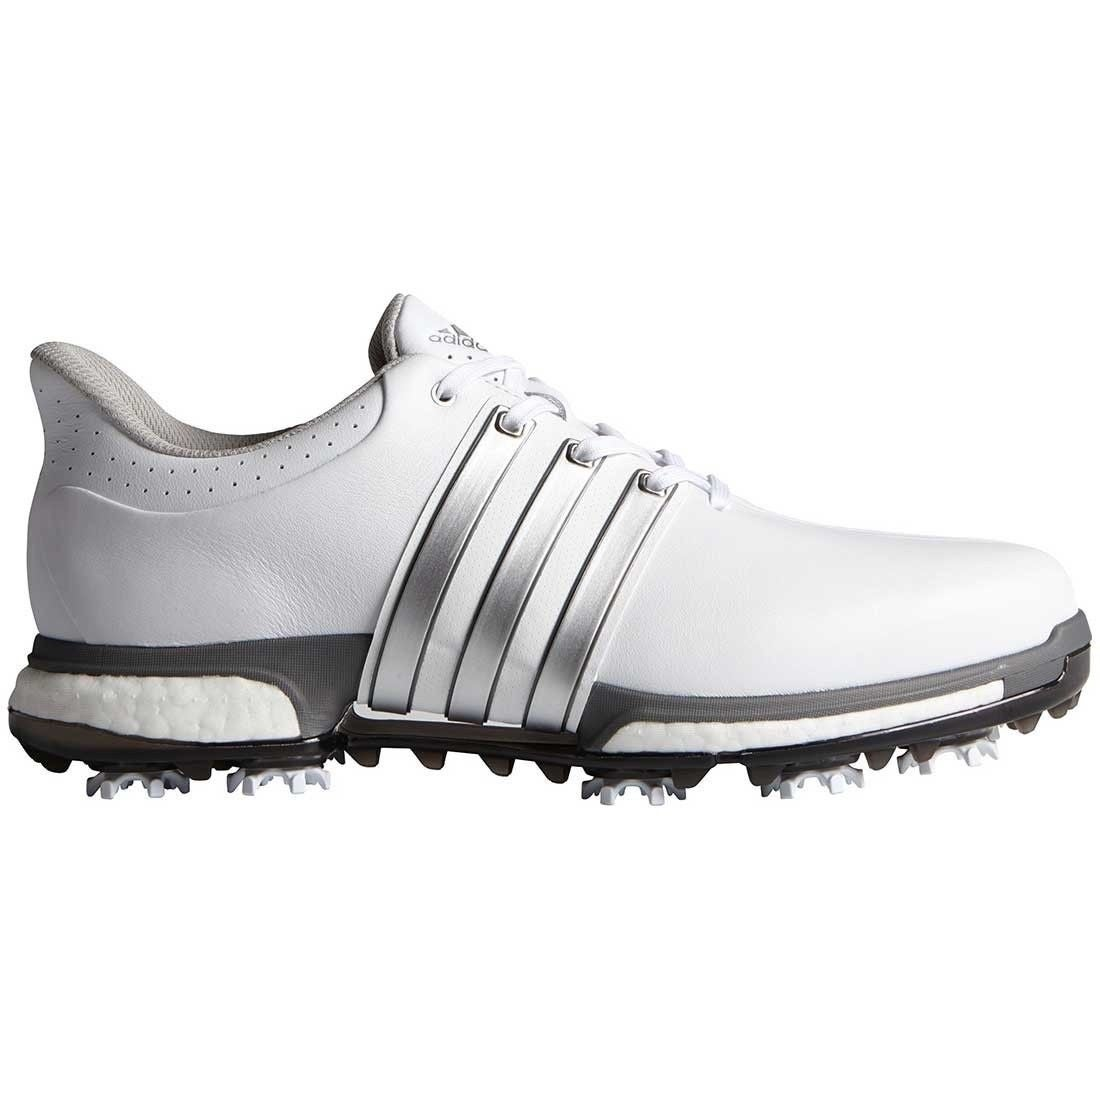 competitive price e2202 de489 Golf Shoes by Adidas